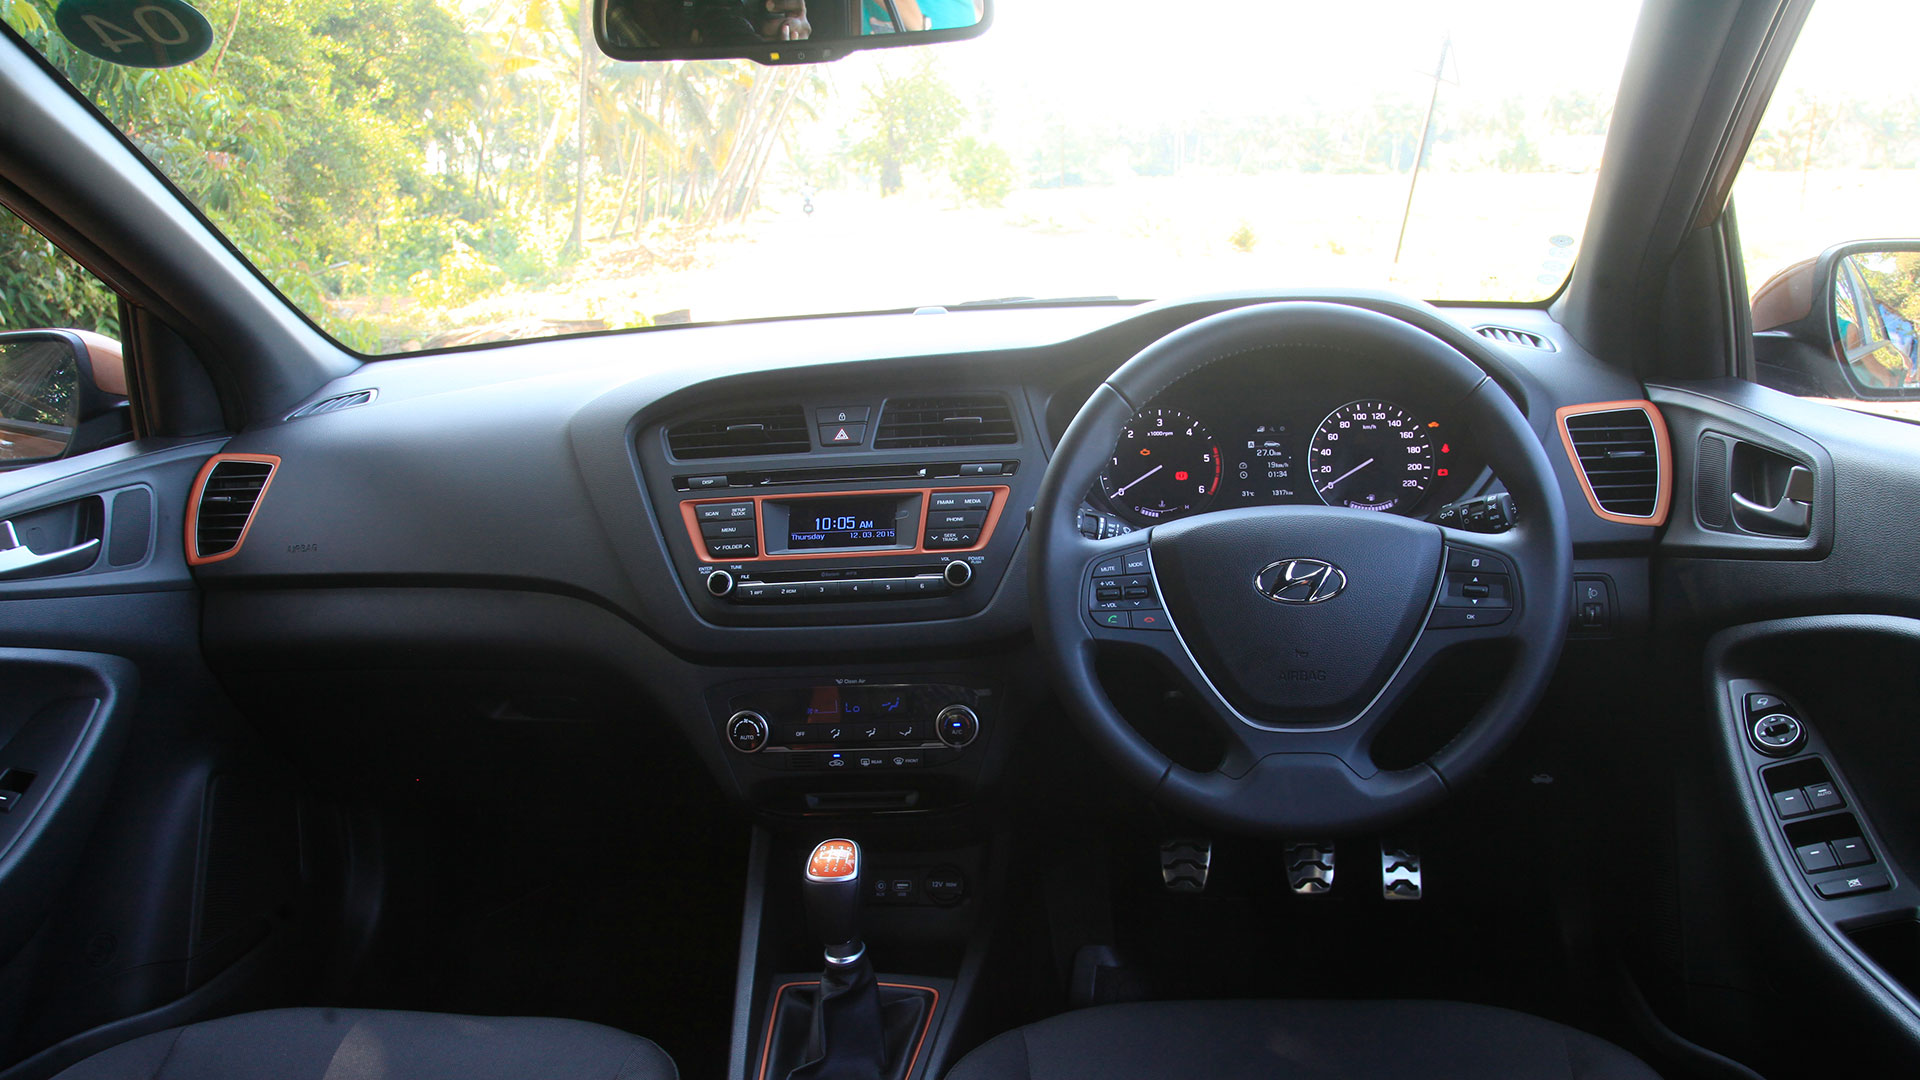 Hyundai i20 active 2015 1 2 sx price mileage reviews for Hyundai i20 2015 interior